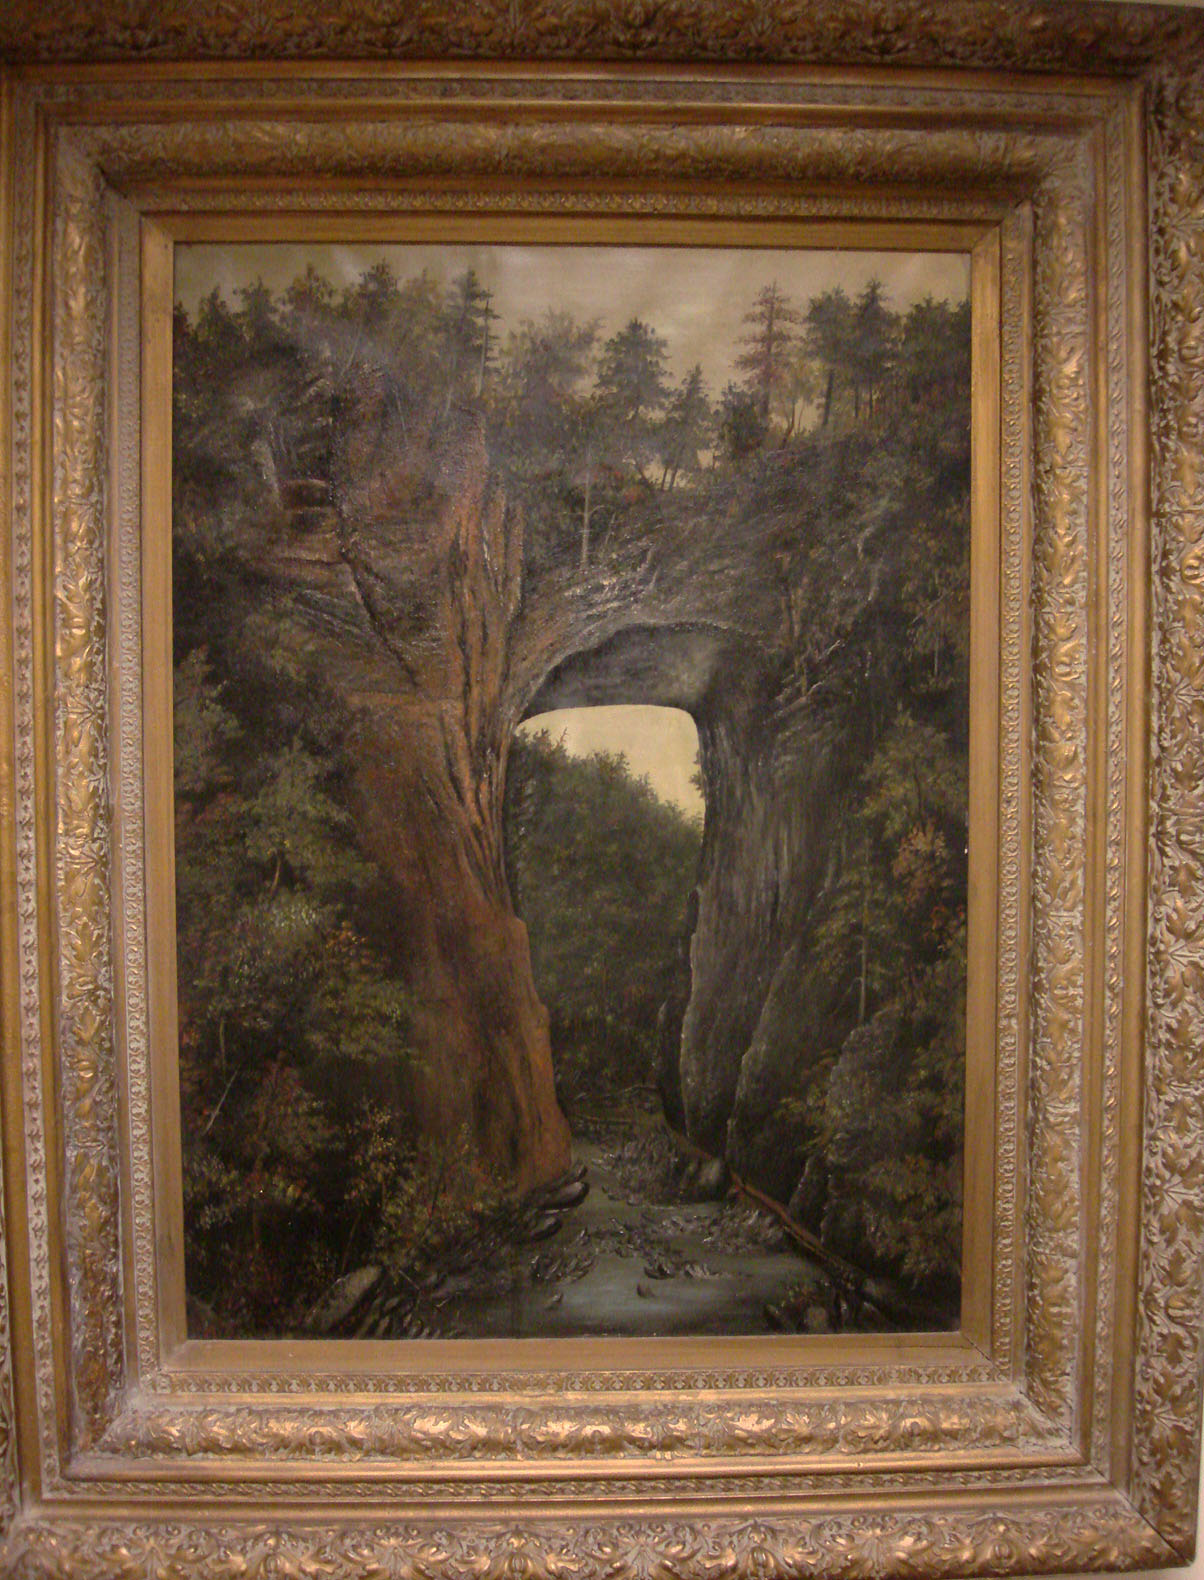 Fanny Lecky Paxton's painting of the Natural Bridge, Virginia, 1893. (MSS 8251. Photograph by Donna Stapley).